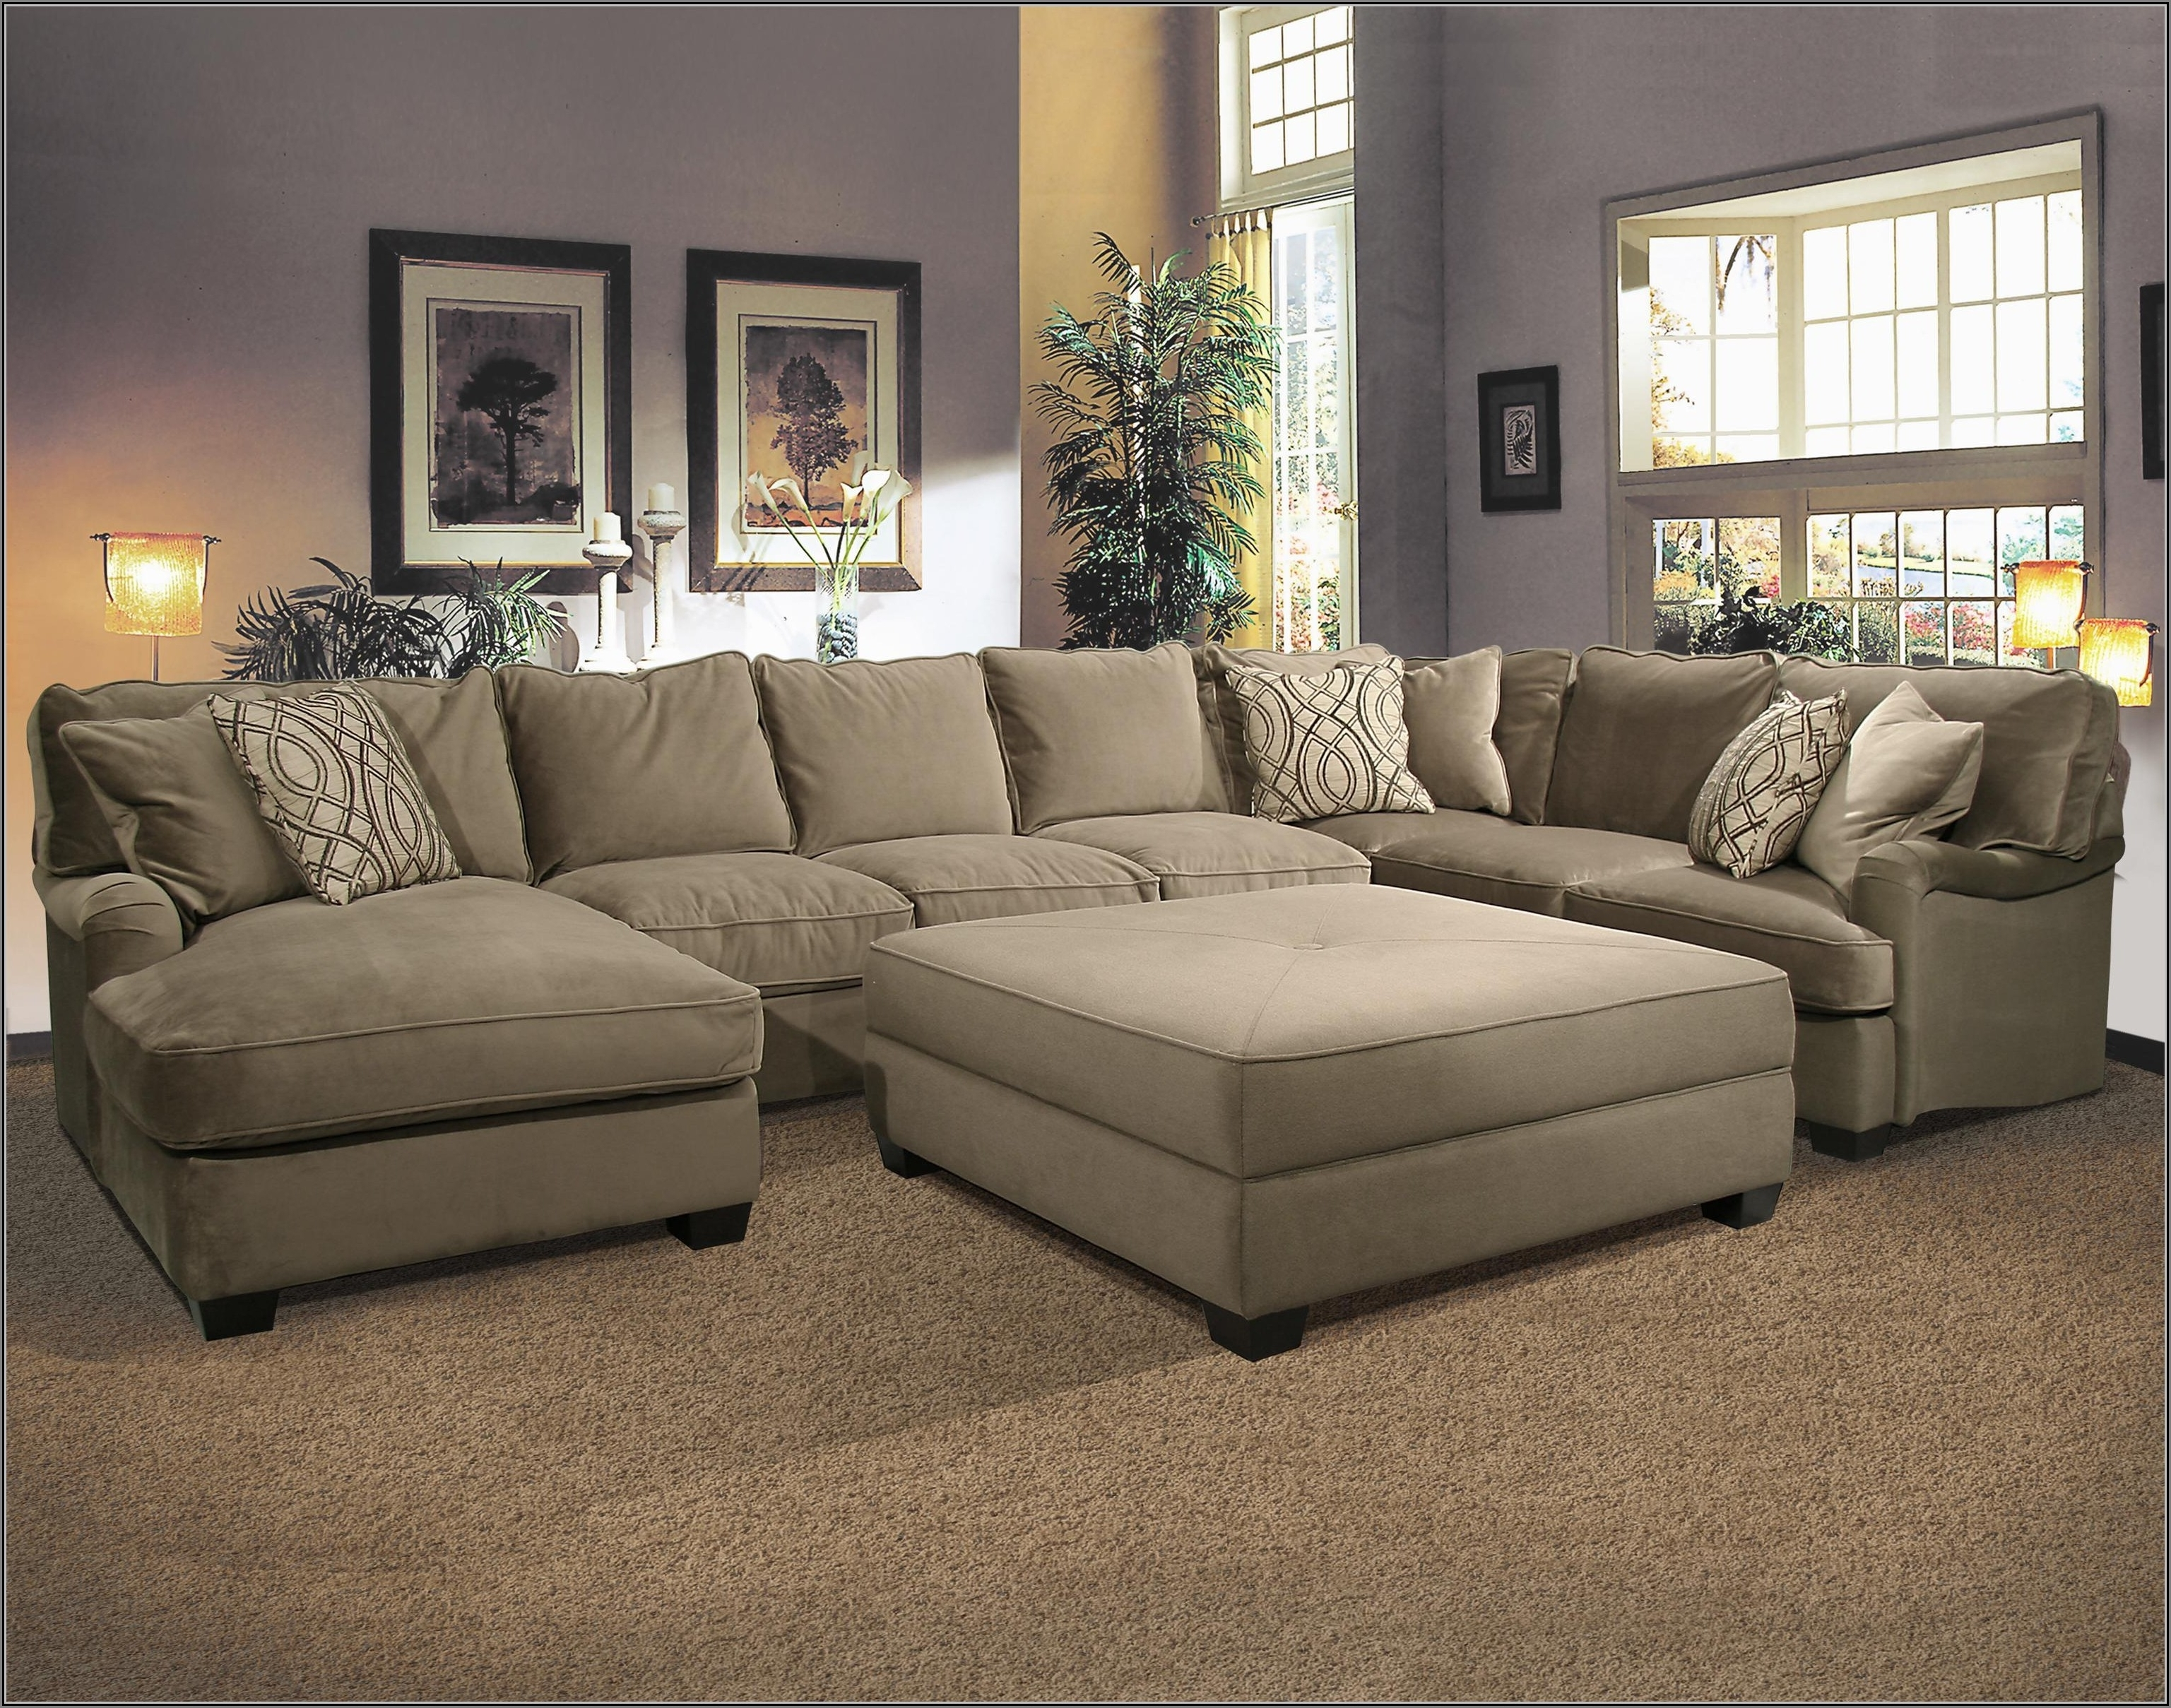 Big U Shaped Sectionals In Current Sectional Sofa With Large Ottoman Hotelsbacau Com Intended For (View 3 of 20)